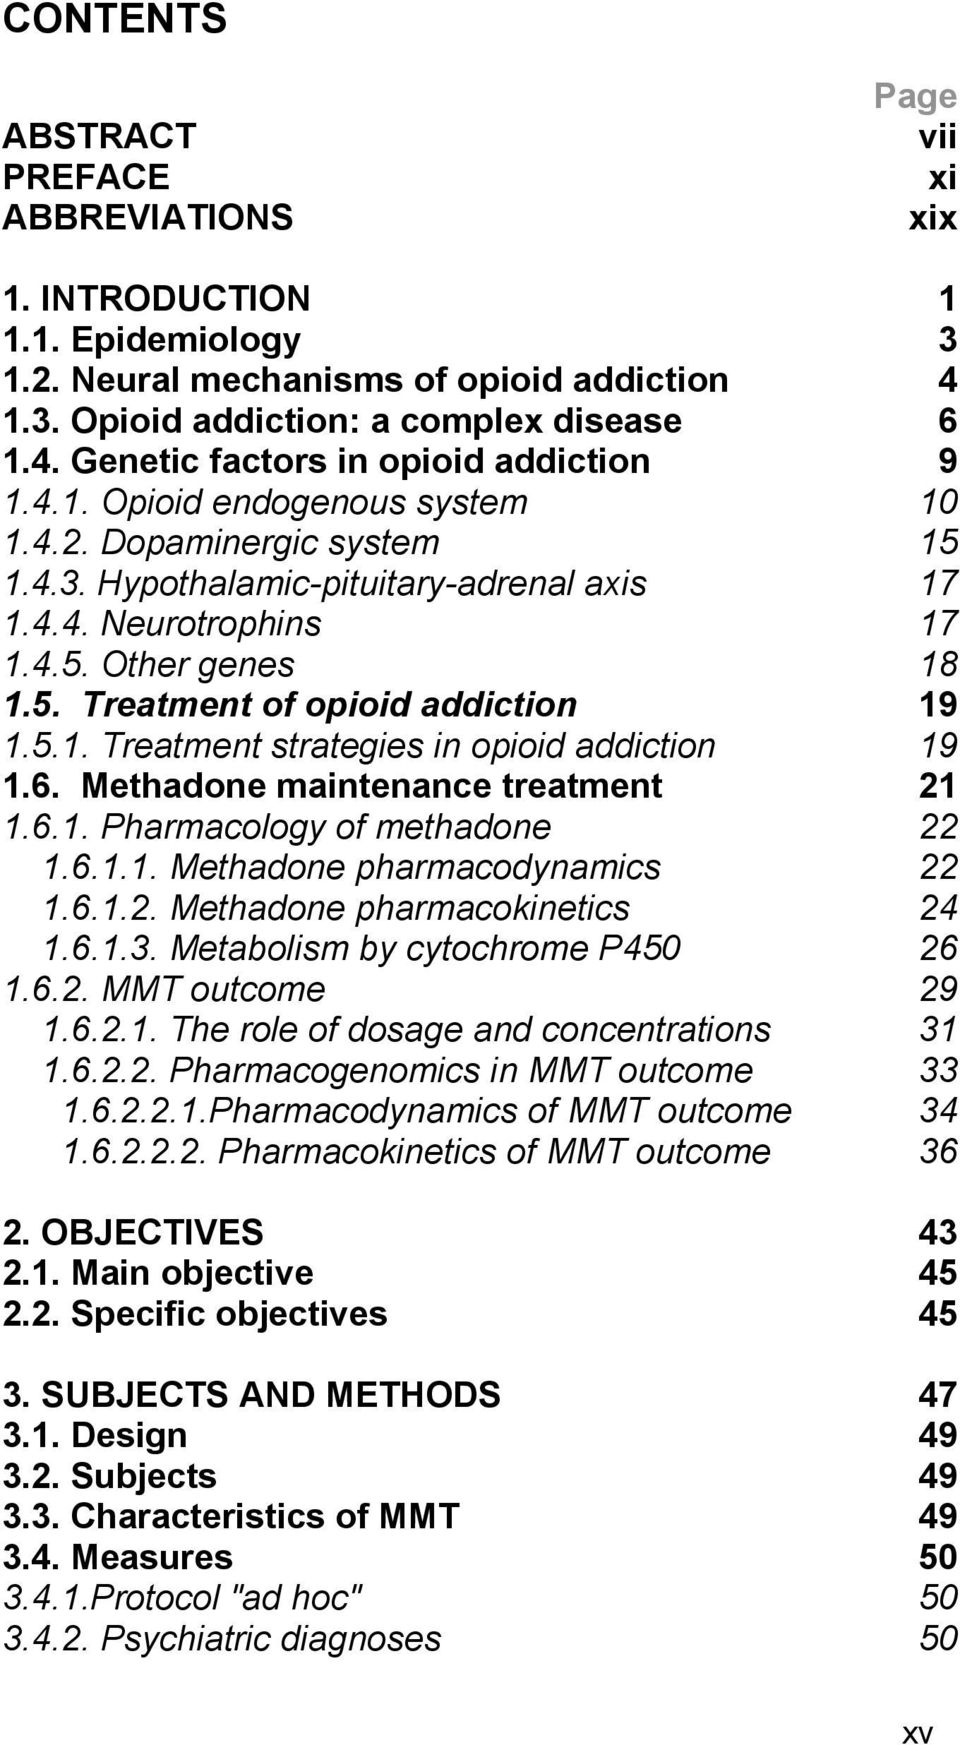 6. Methadone maintenance treatment 21 1.6.1. Pharmacology of methadone 22 1.6.1.1. Methadone pharmacodynamics 22 1.6.1.2. Methadone pharmacokinetics 24 1.6.1.3. Metabolism by cytochrome P450 26 1.6.2. MMT outcome 29 1.